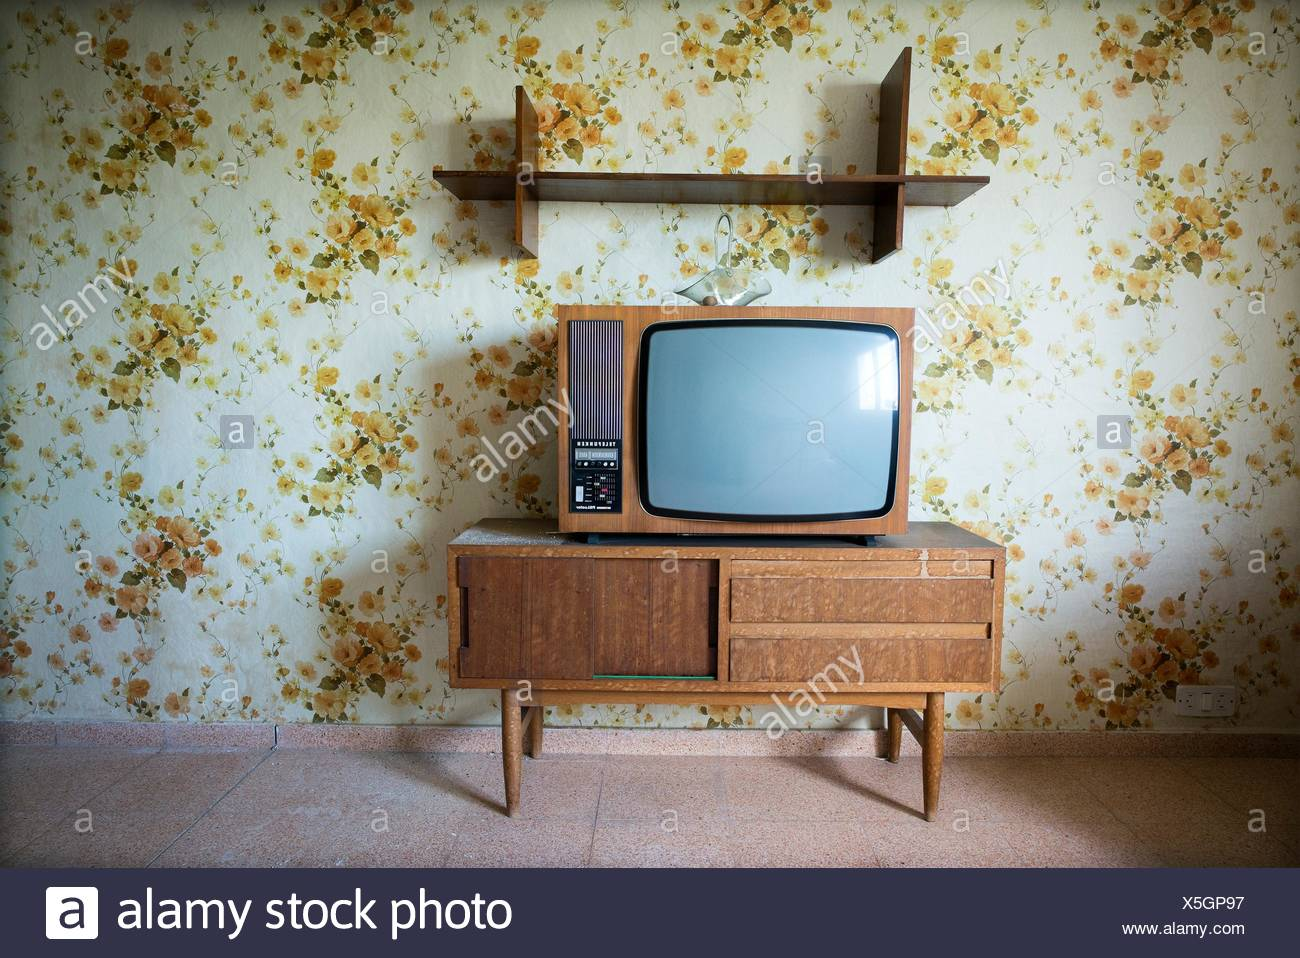 Vintage Living Room With A Floral Wallpaper In The Wall And Ta TV On Top Of Cabinet Mao Mahon Menorca Biosphere